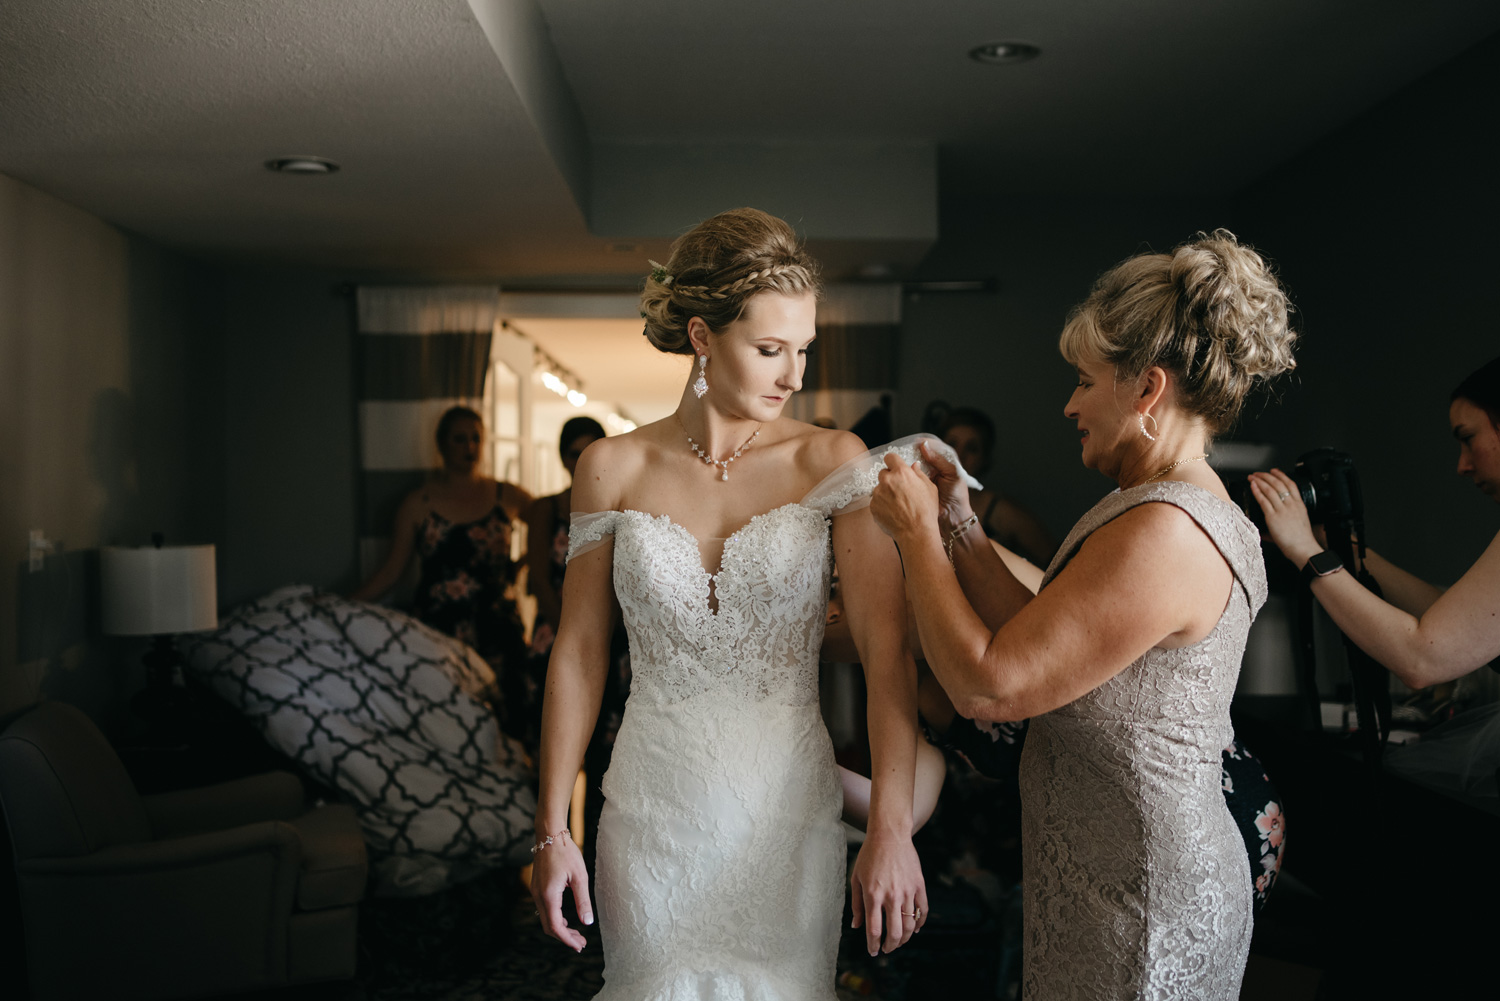 Mom helping bride put on her wedding dress